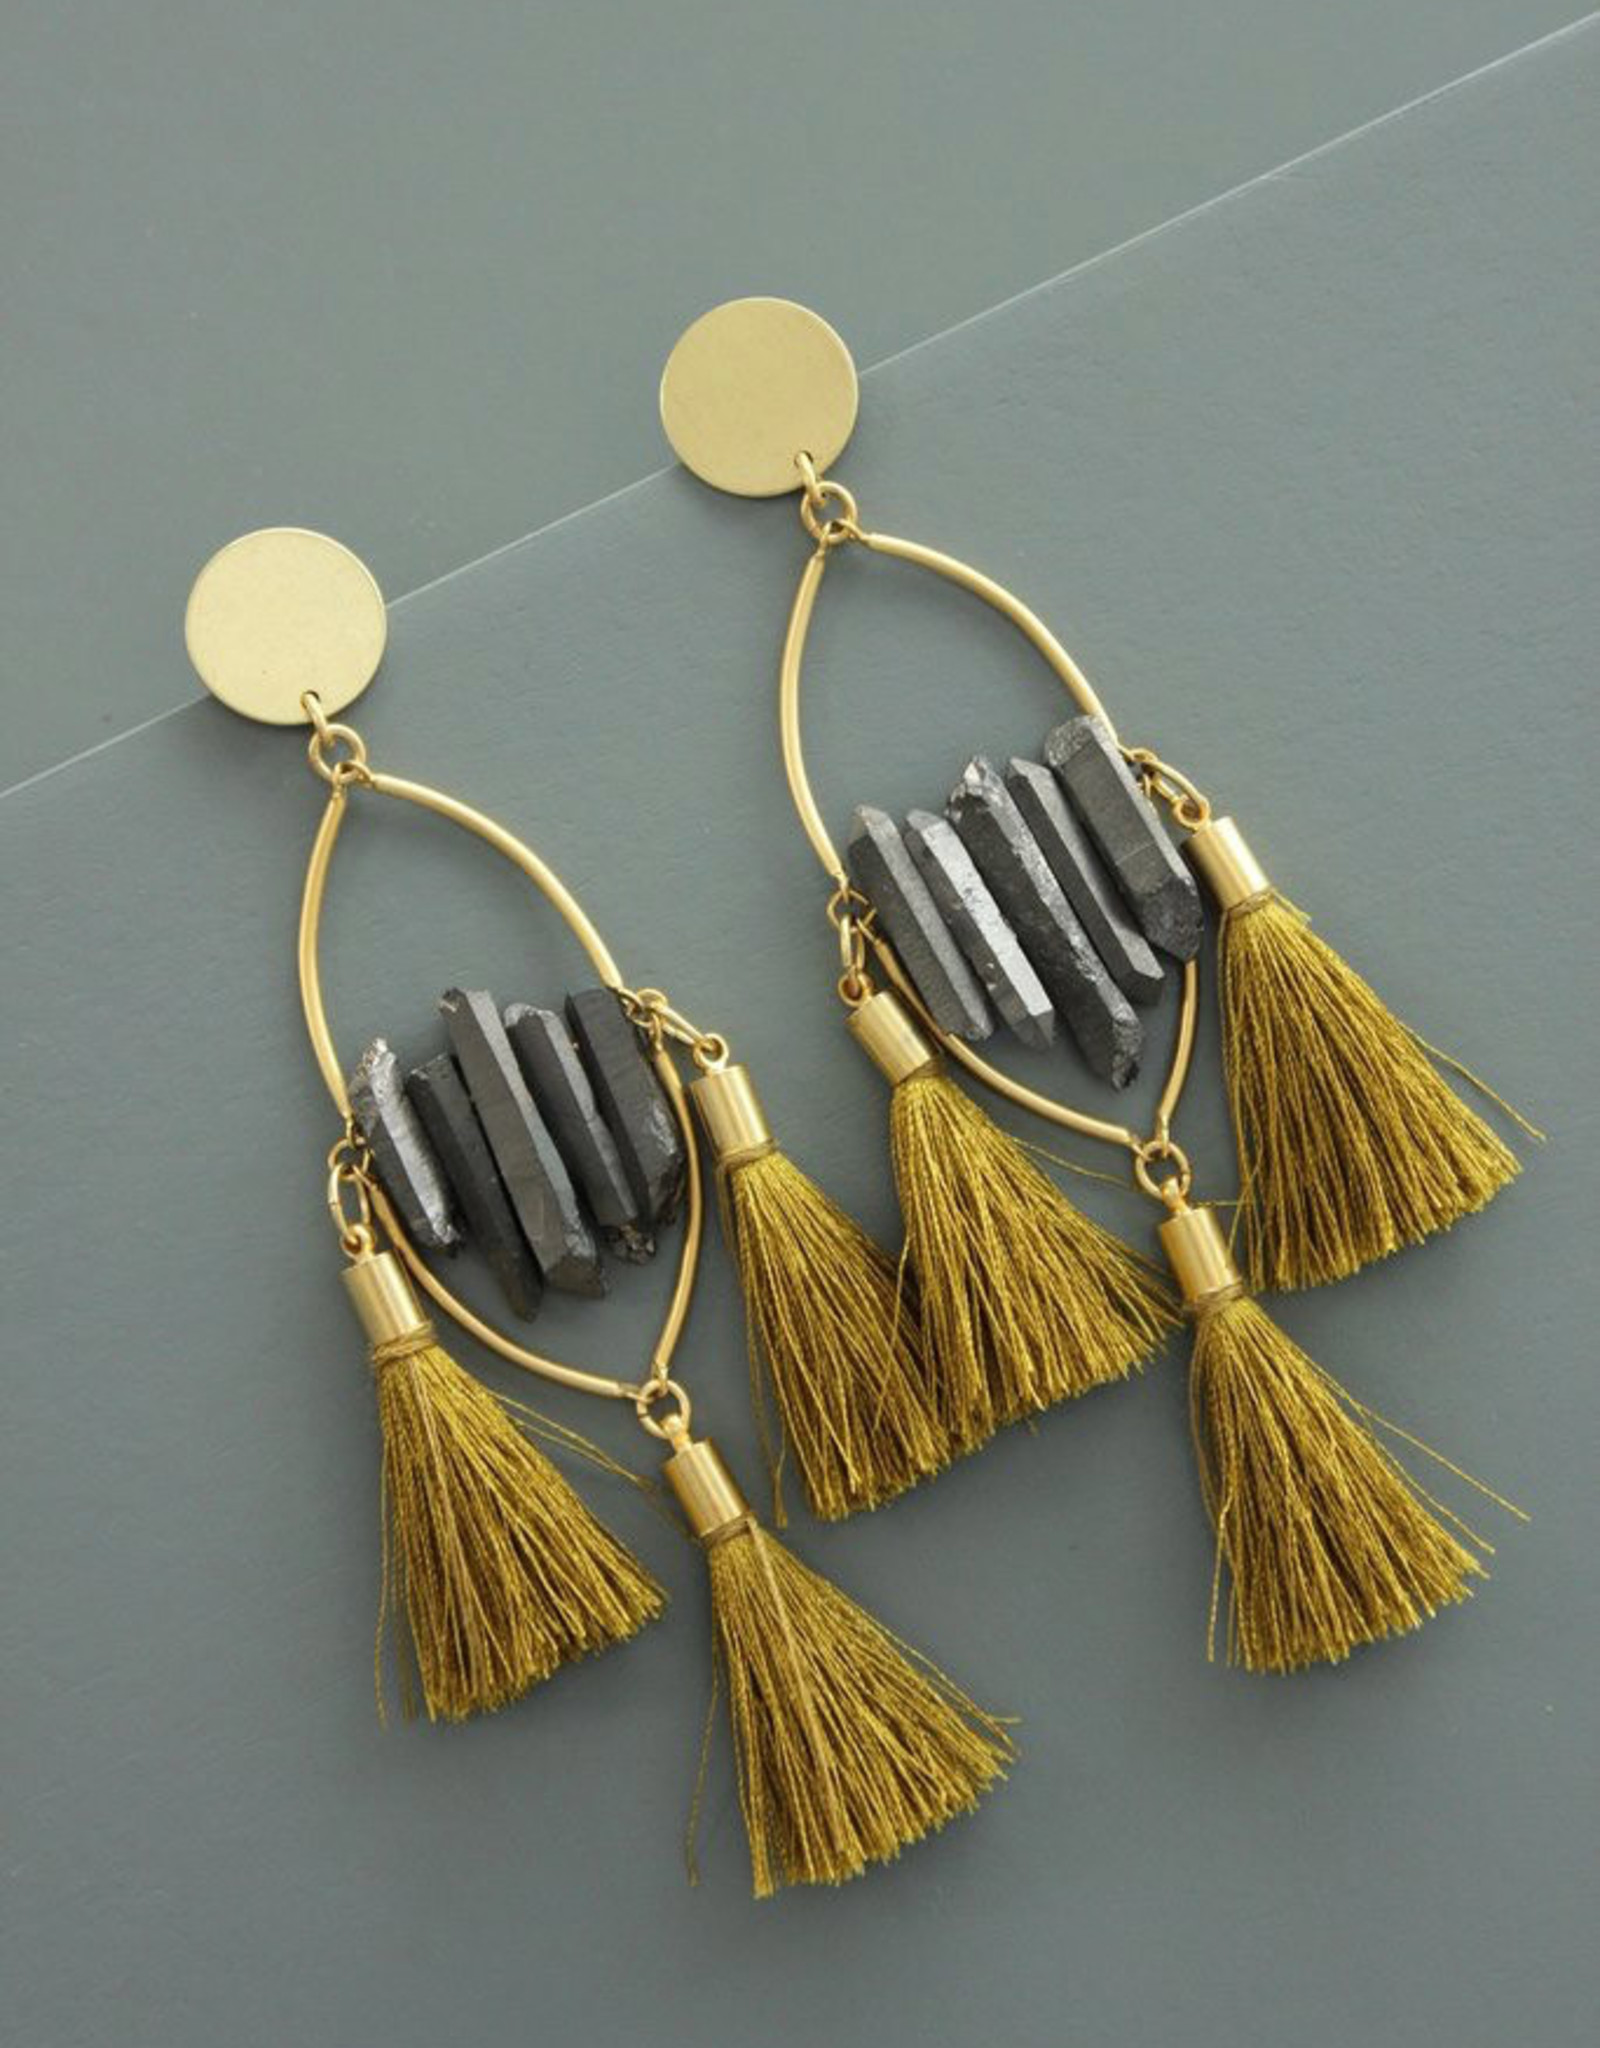 David Aubrey Statement Post Earrings , Slate Crystals with Gold Tassels - David Aubrey